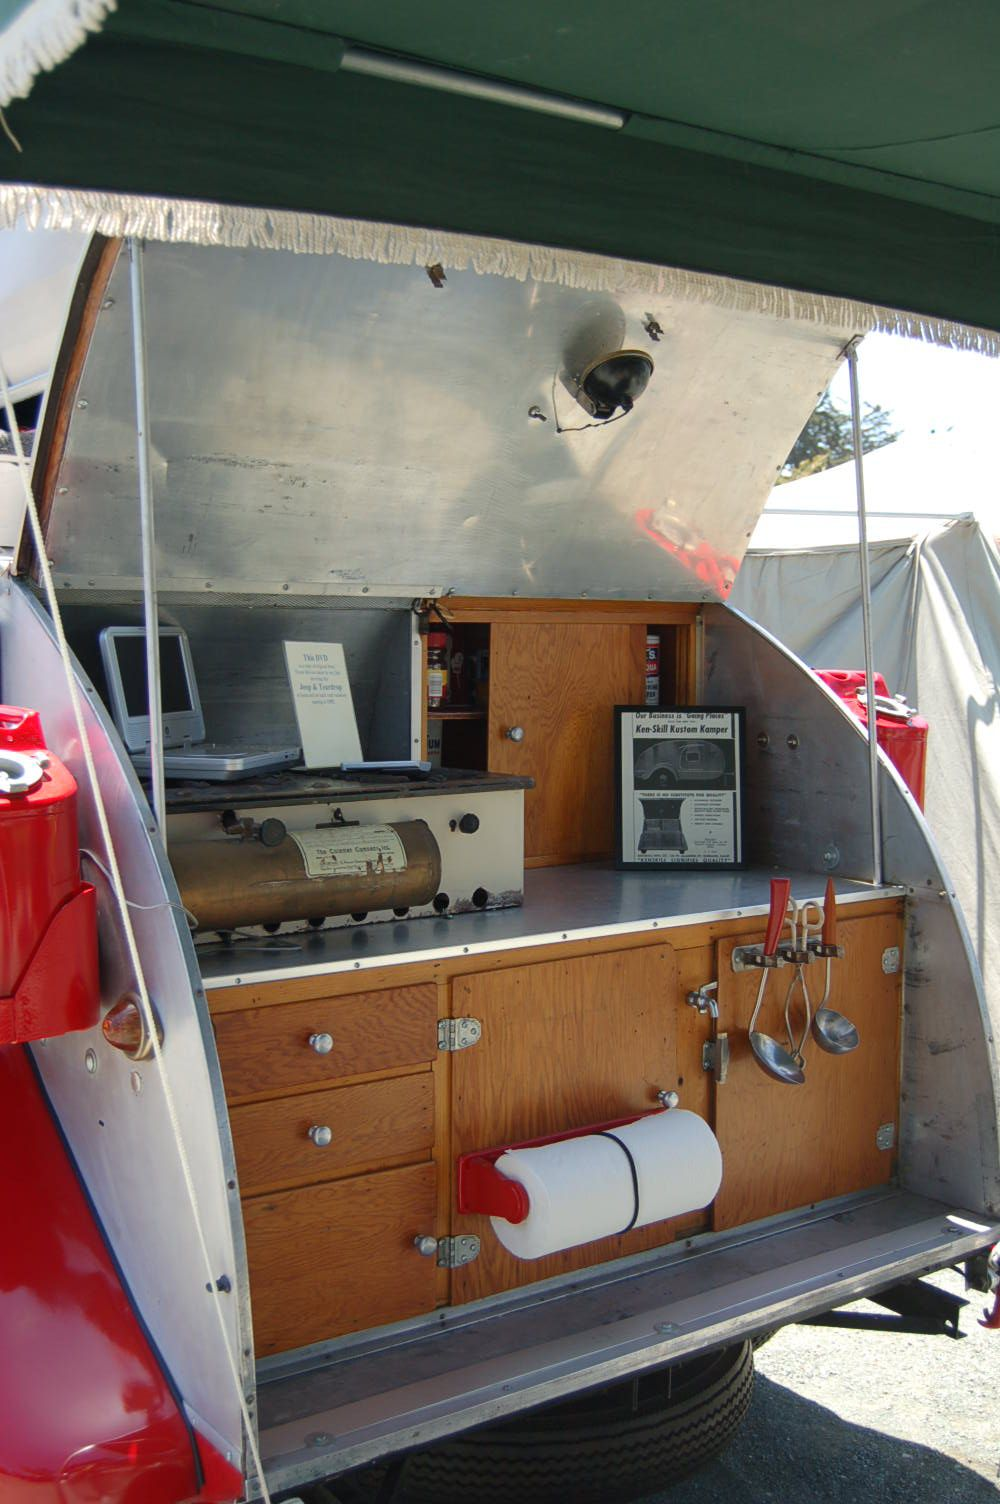 Camper Trailer Kitchen Designs Designs For Teardrop Campers This Is A 1947 Kenskill Teardrop